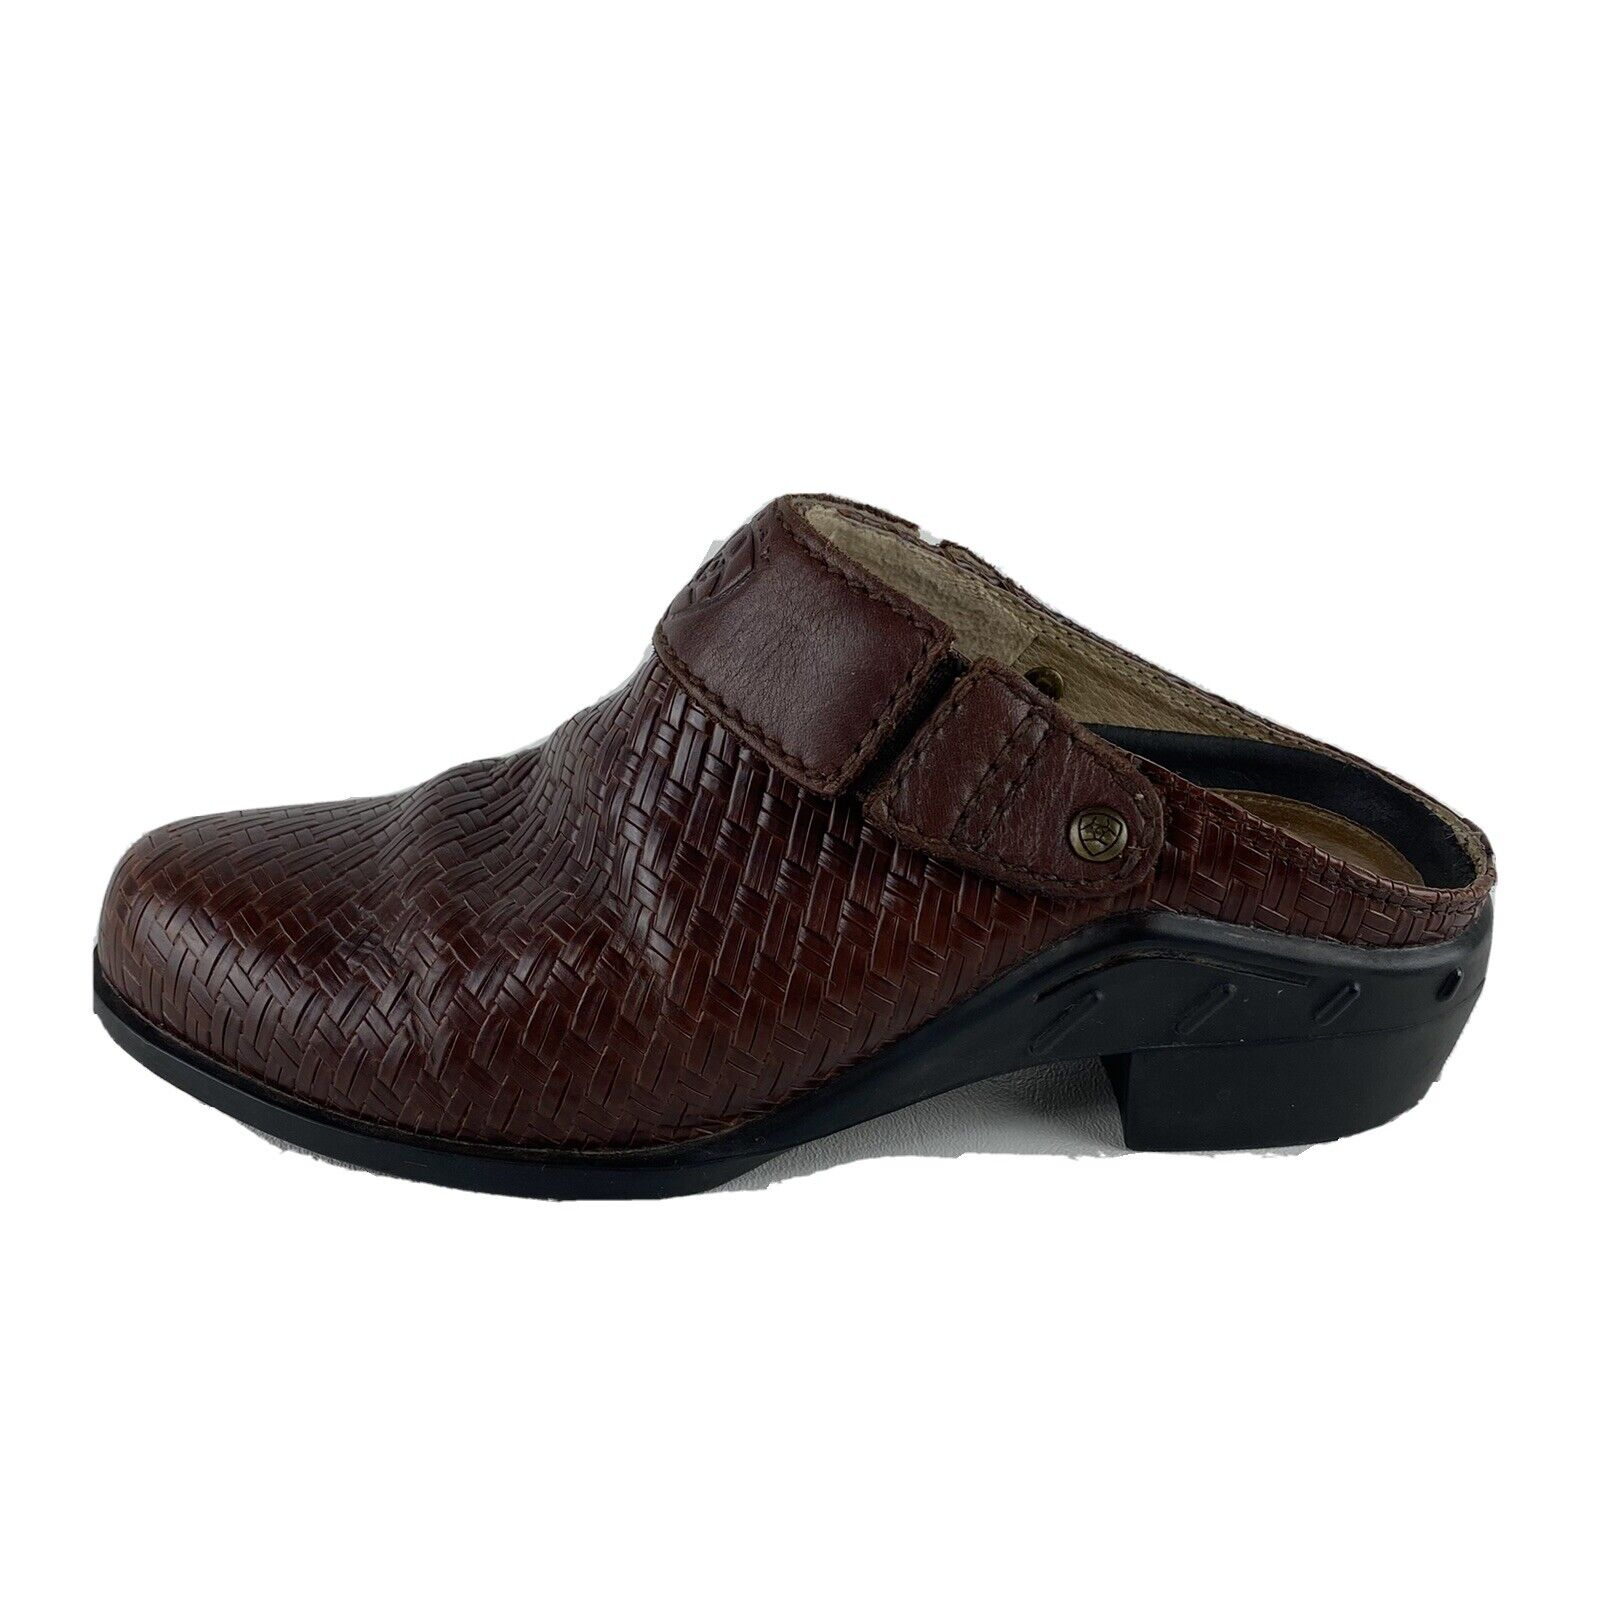 Ariat Women's Woven Patent Leather Mule Slip On Shoes Brown Size EU 36/ US 5.5